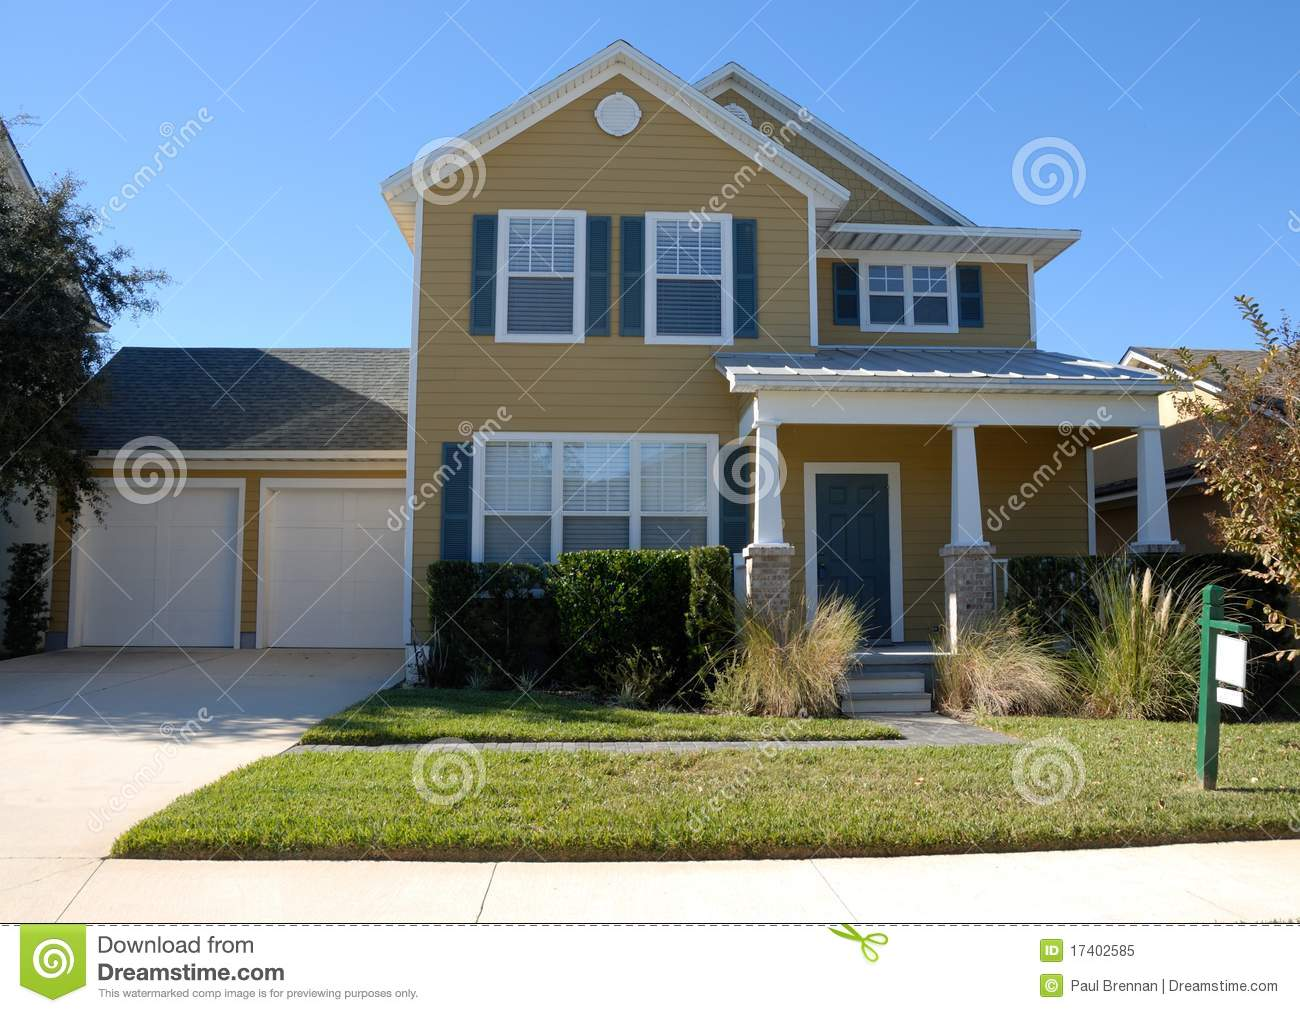 Modern suburban home for sale royalty free stock photo for Modern house auction